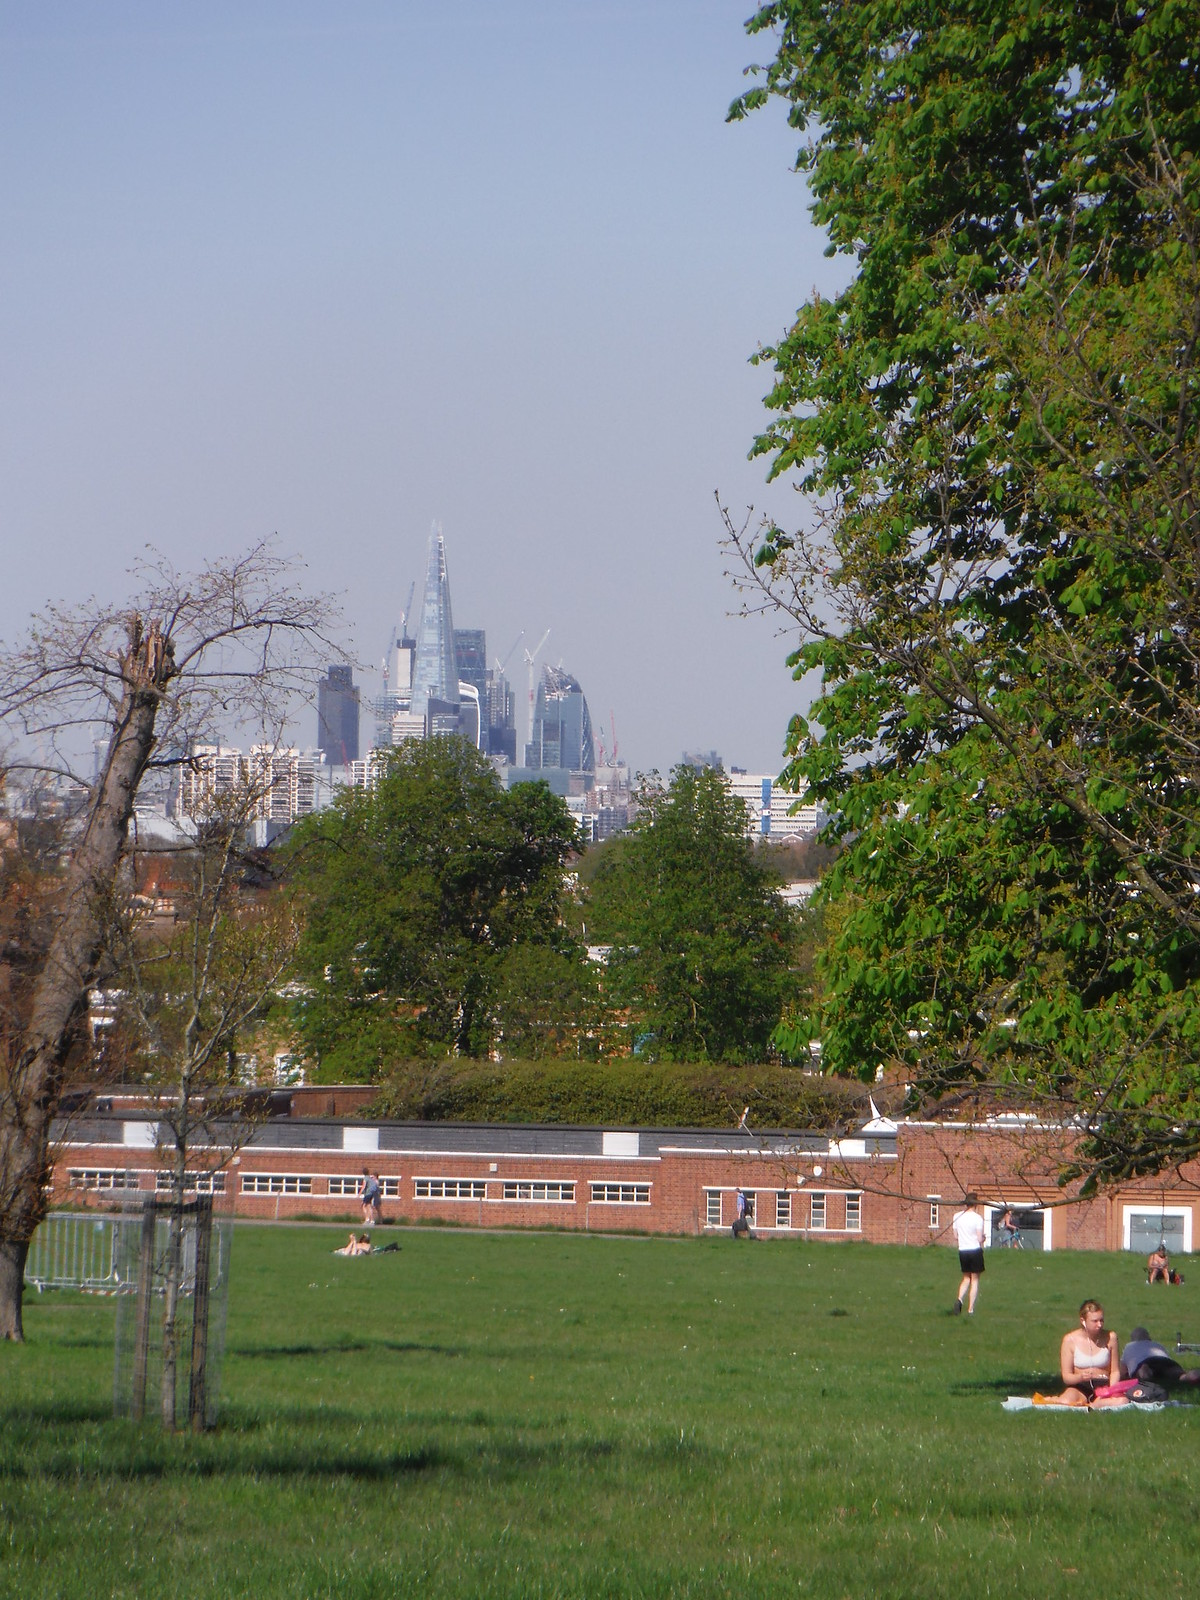 City of London from Brockwell Park SWC Short Walk 39 - Brockwell Park (Herne Hill Circular or to Brixton)